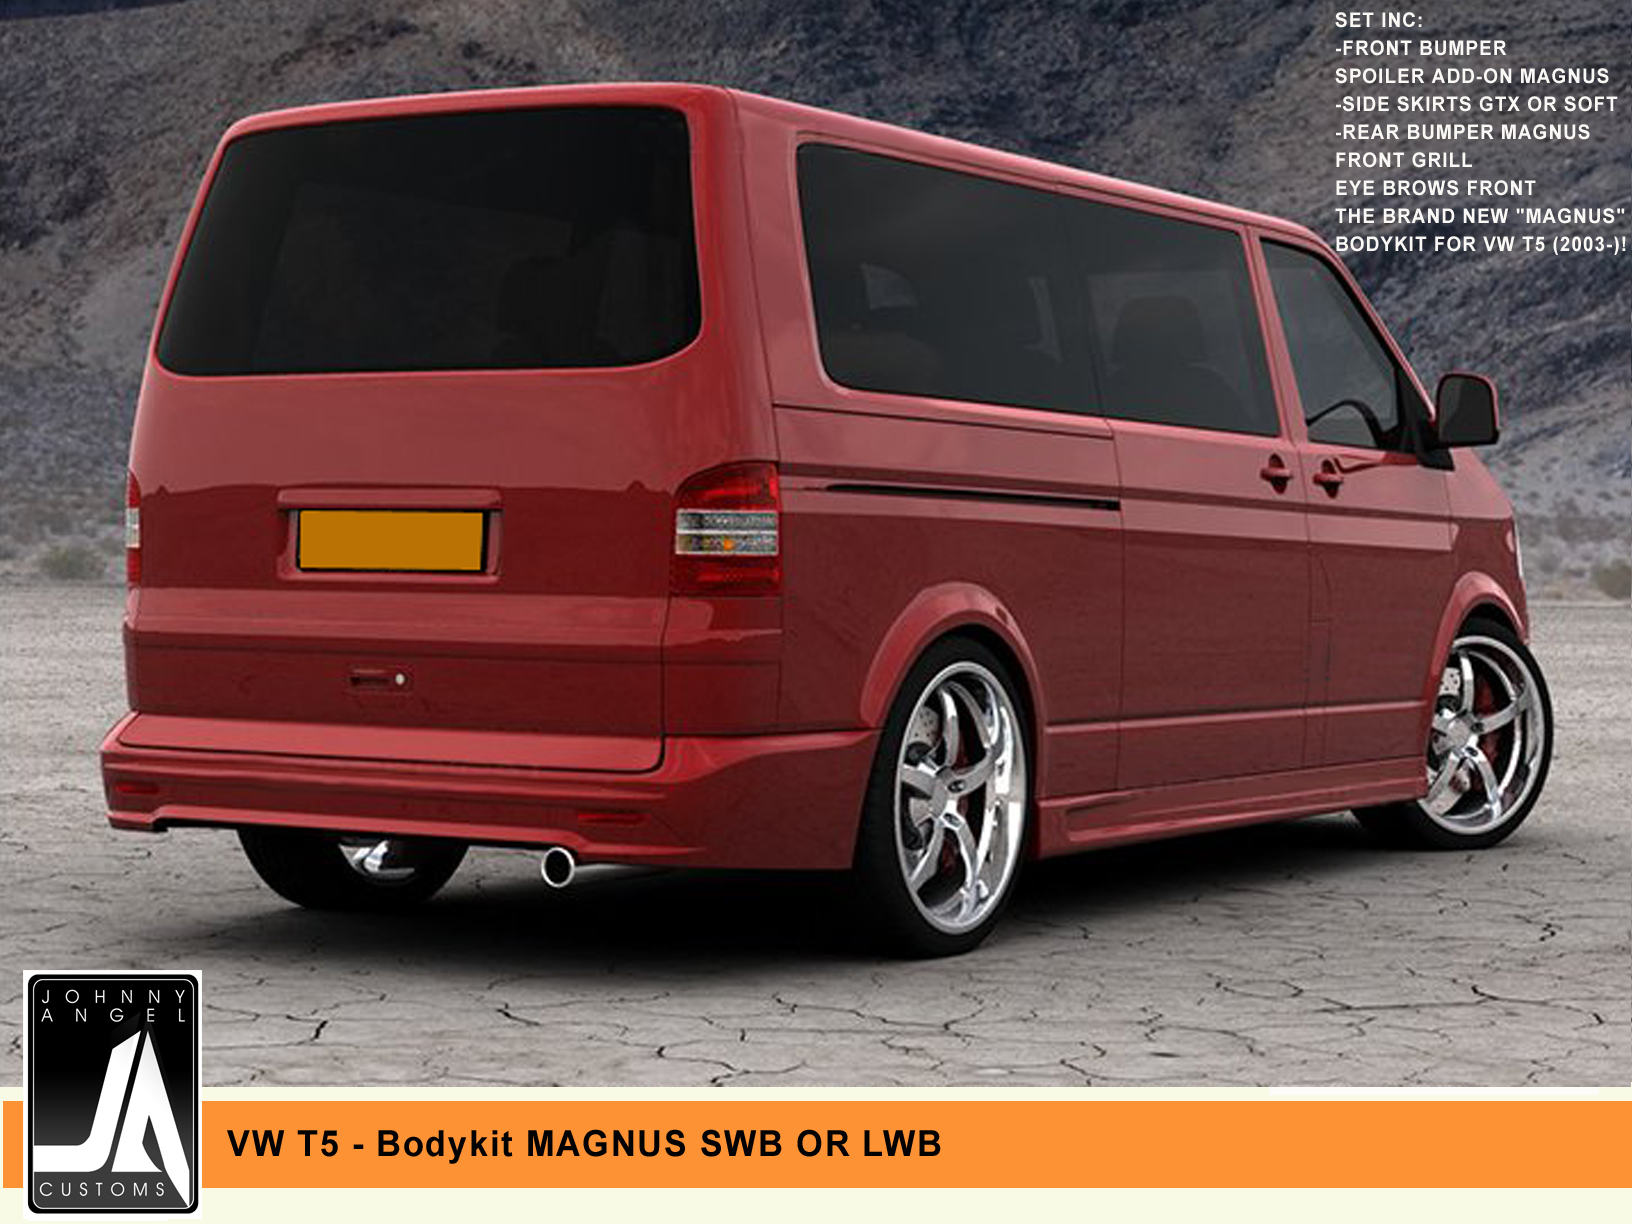 VW T5 - Bodykit MAGNUS SWB OR LWB  Johnny Angel Customs pic 2